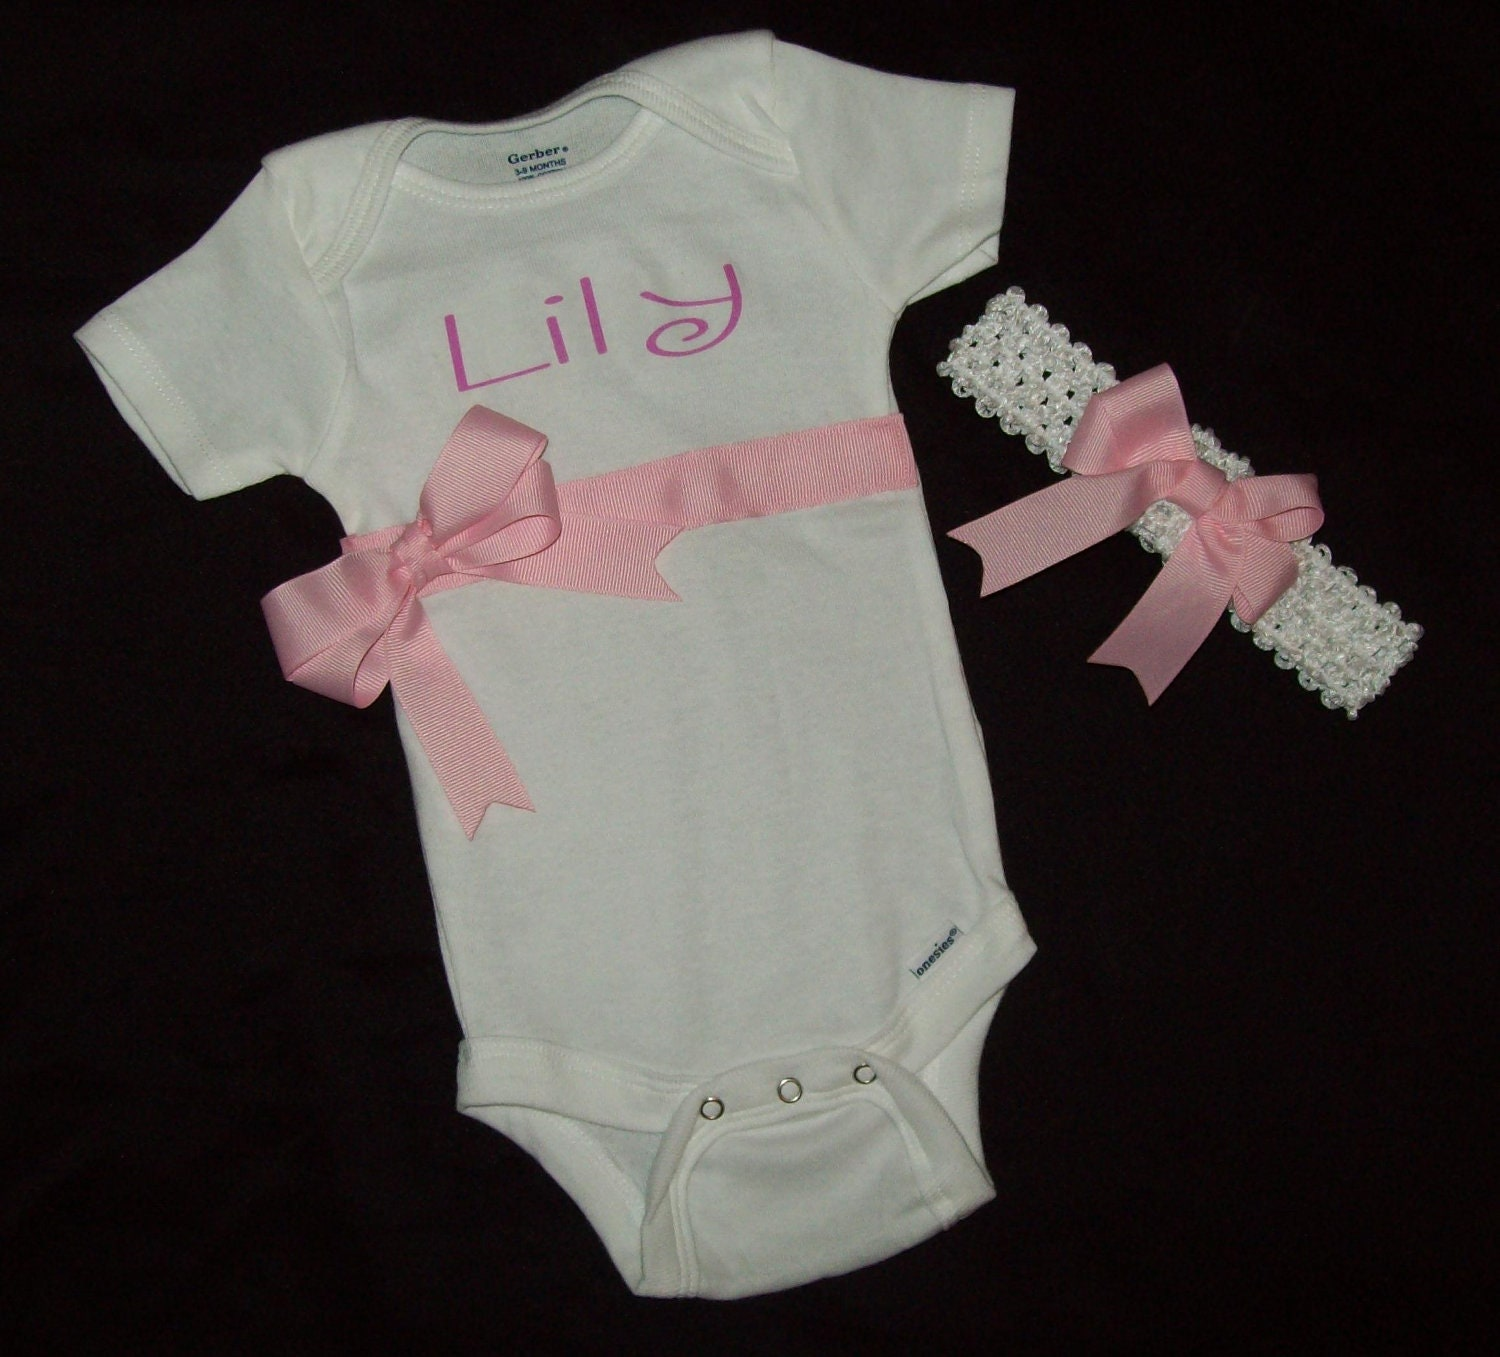 Personalized Baby Gift Sets : Embroidered baby gift set personalized one piece bodysuit